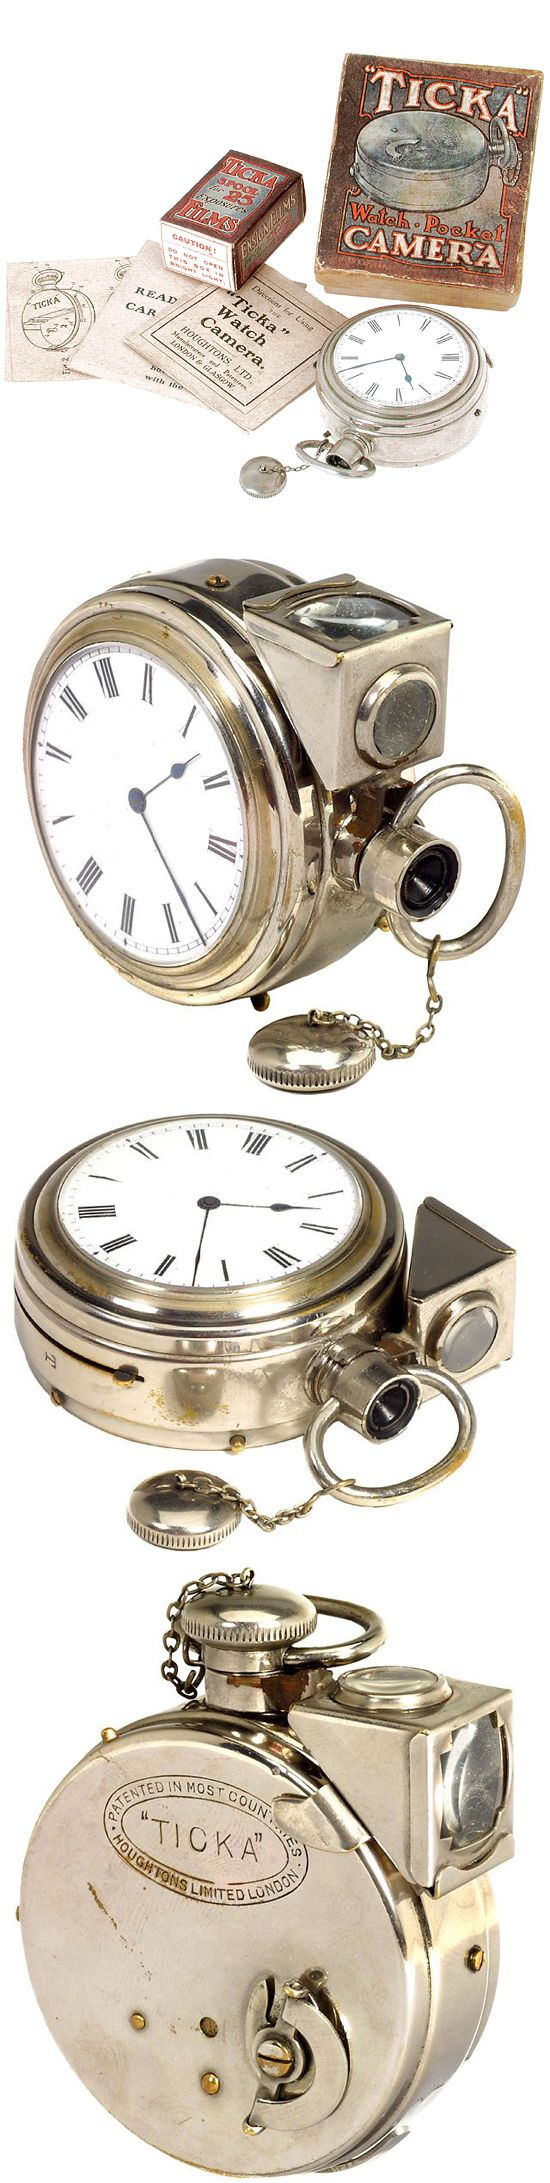 "The ""TICKA"" Watch Camera c. early 1900's (ok so technically NOT a pocket watch but still deserves a shout"